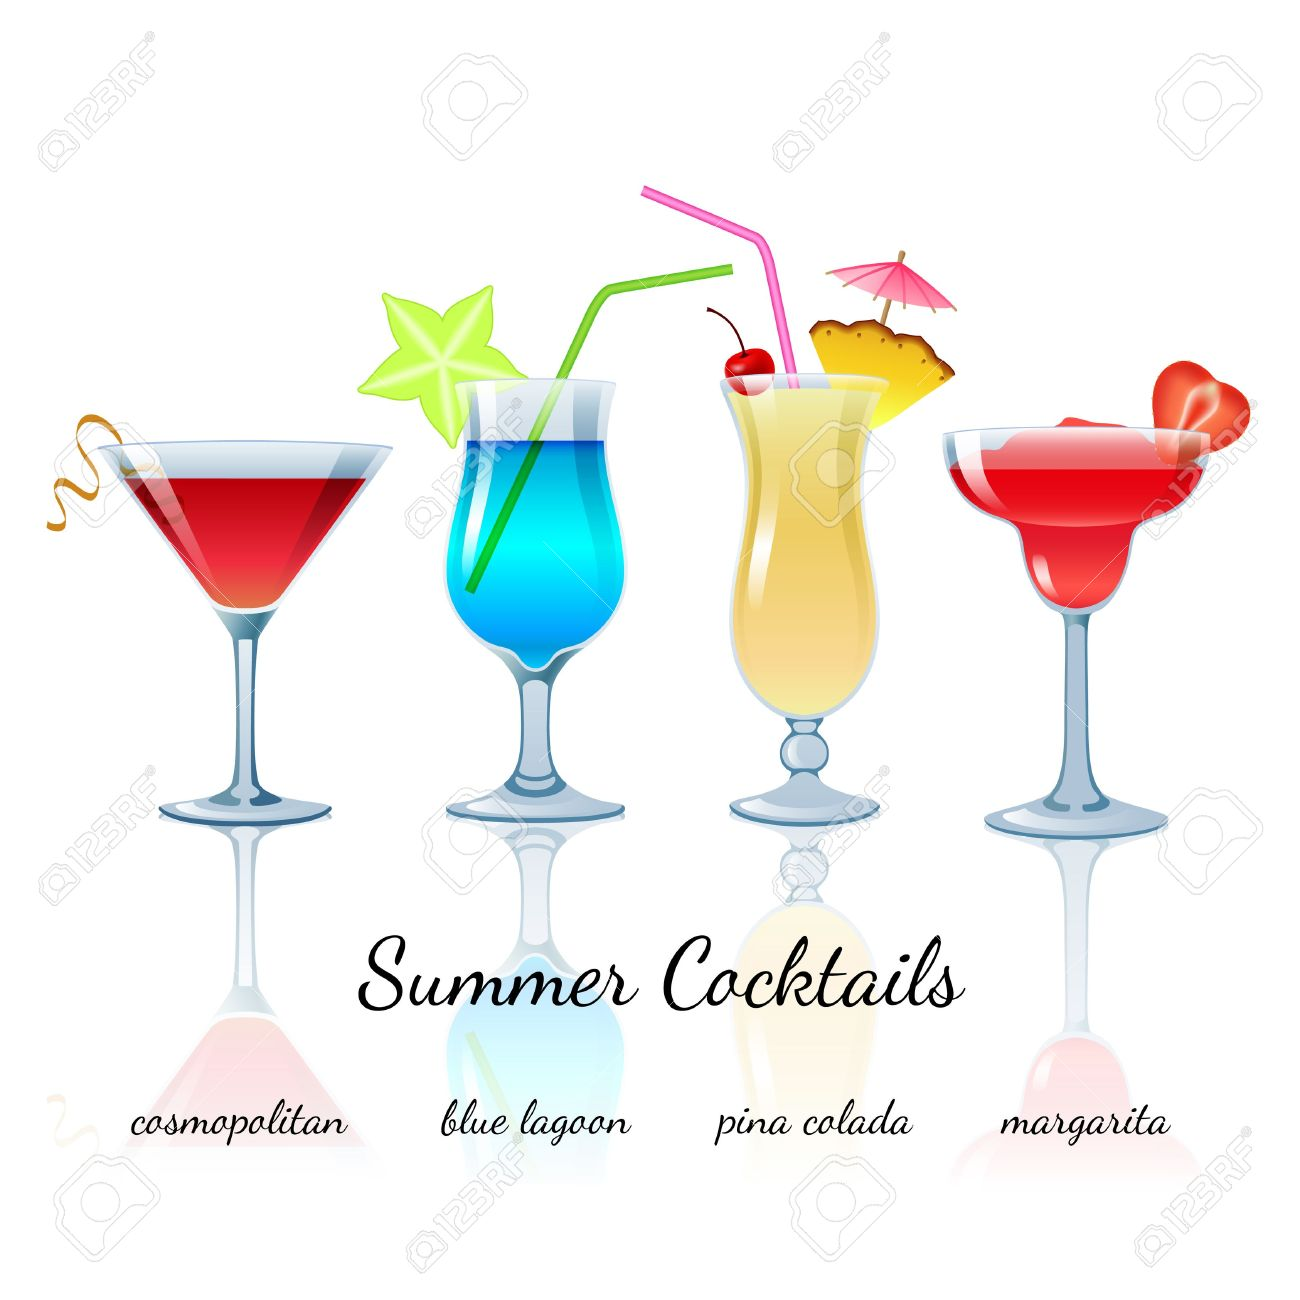 Summer Cocktails Set (isolated): Cosmopolitan, Blue Lagoon, Pina.